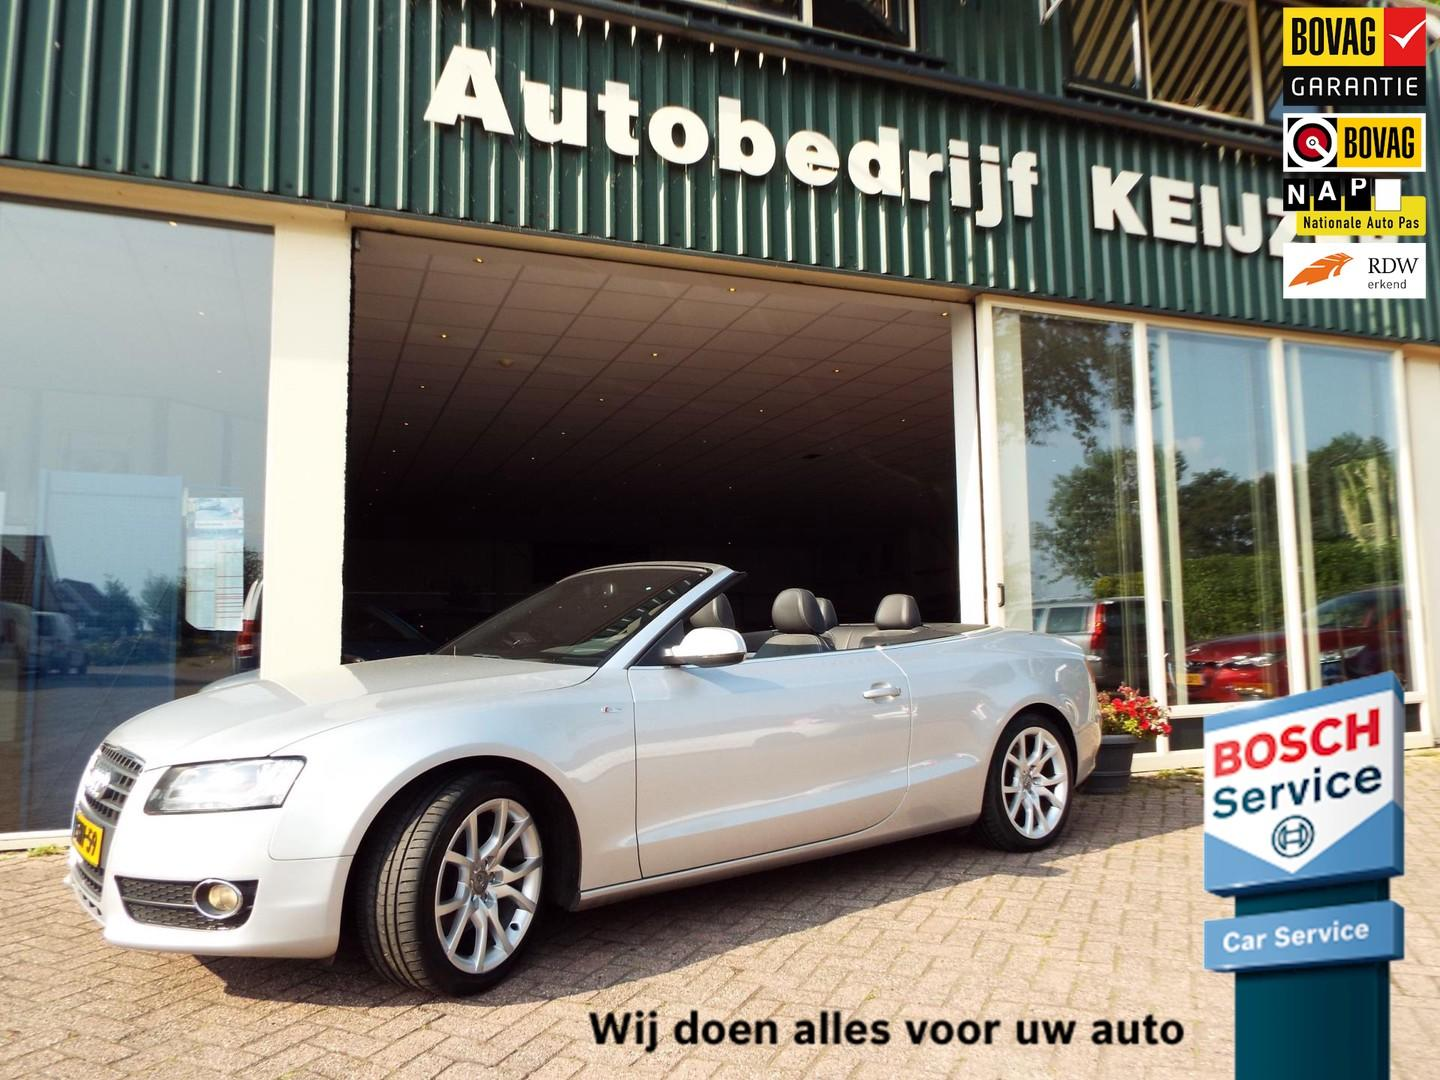 Audi A5 Cabriolet 2.0 tfsi quattro pro line s clima-cruise-automaat-flippers-bovag-